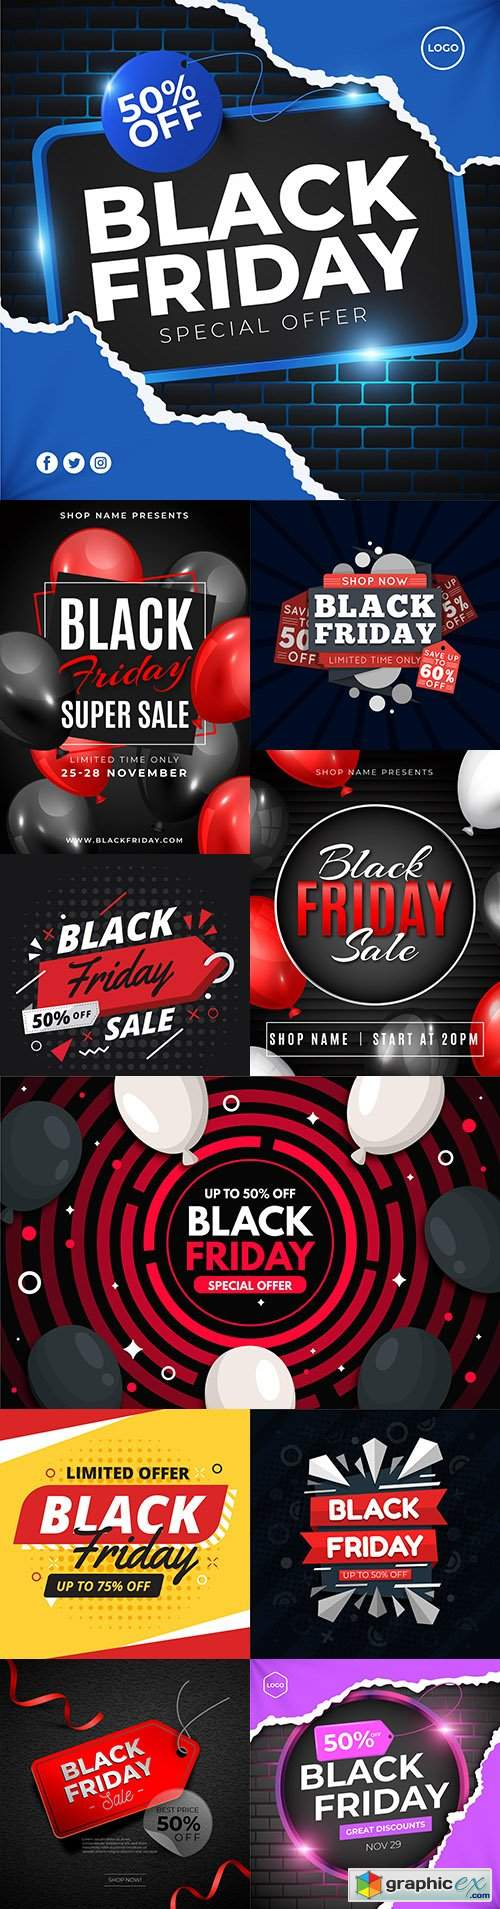 Black Friday and sale special design illustration 35